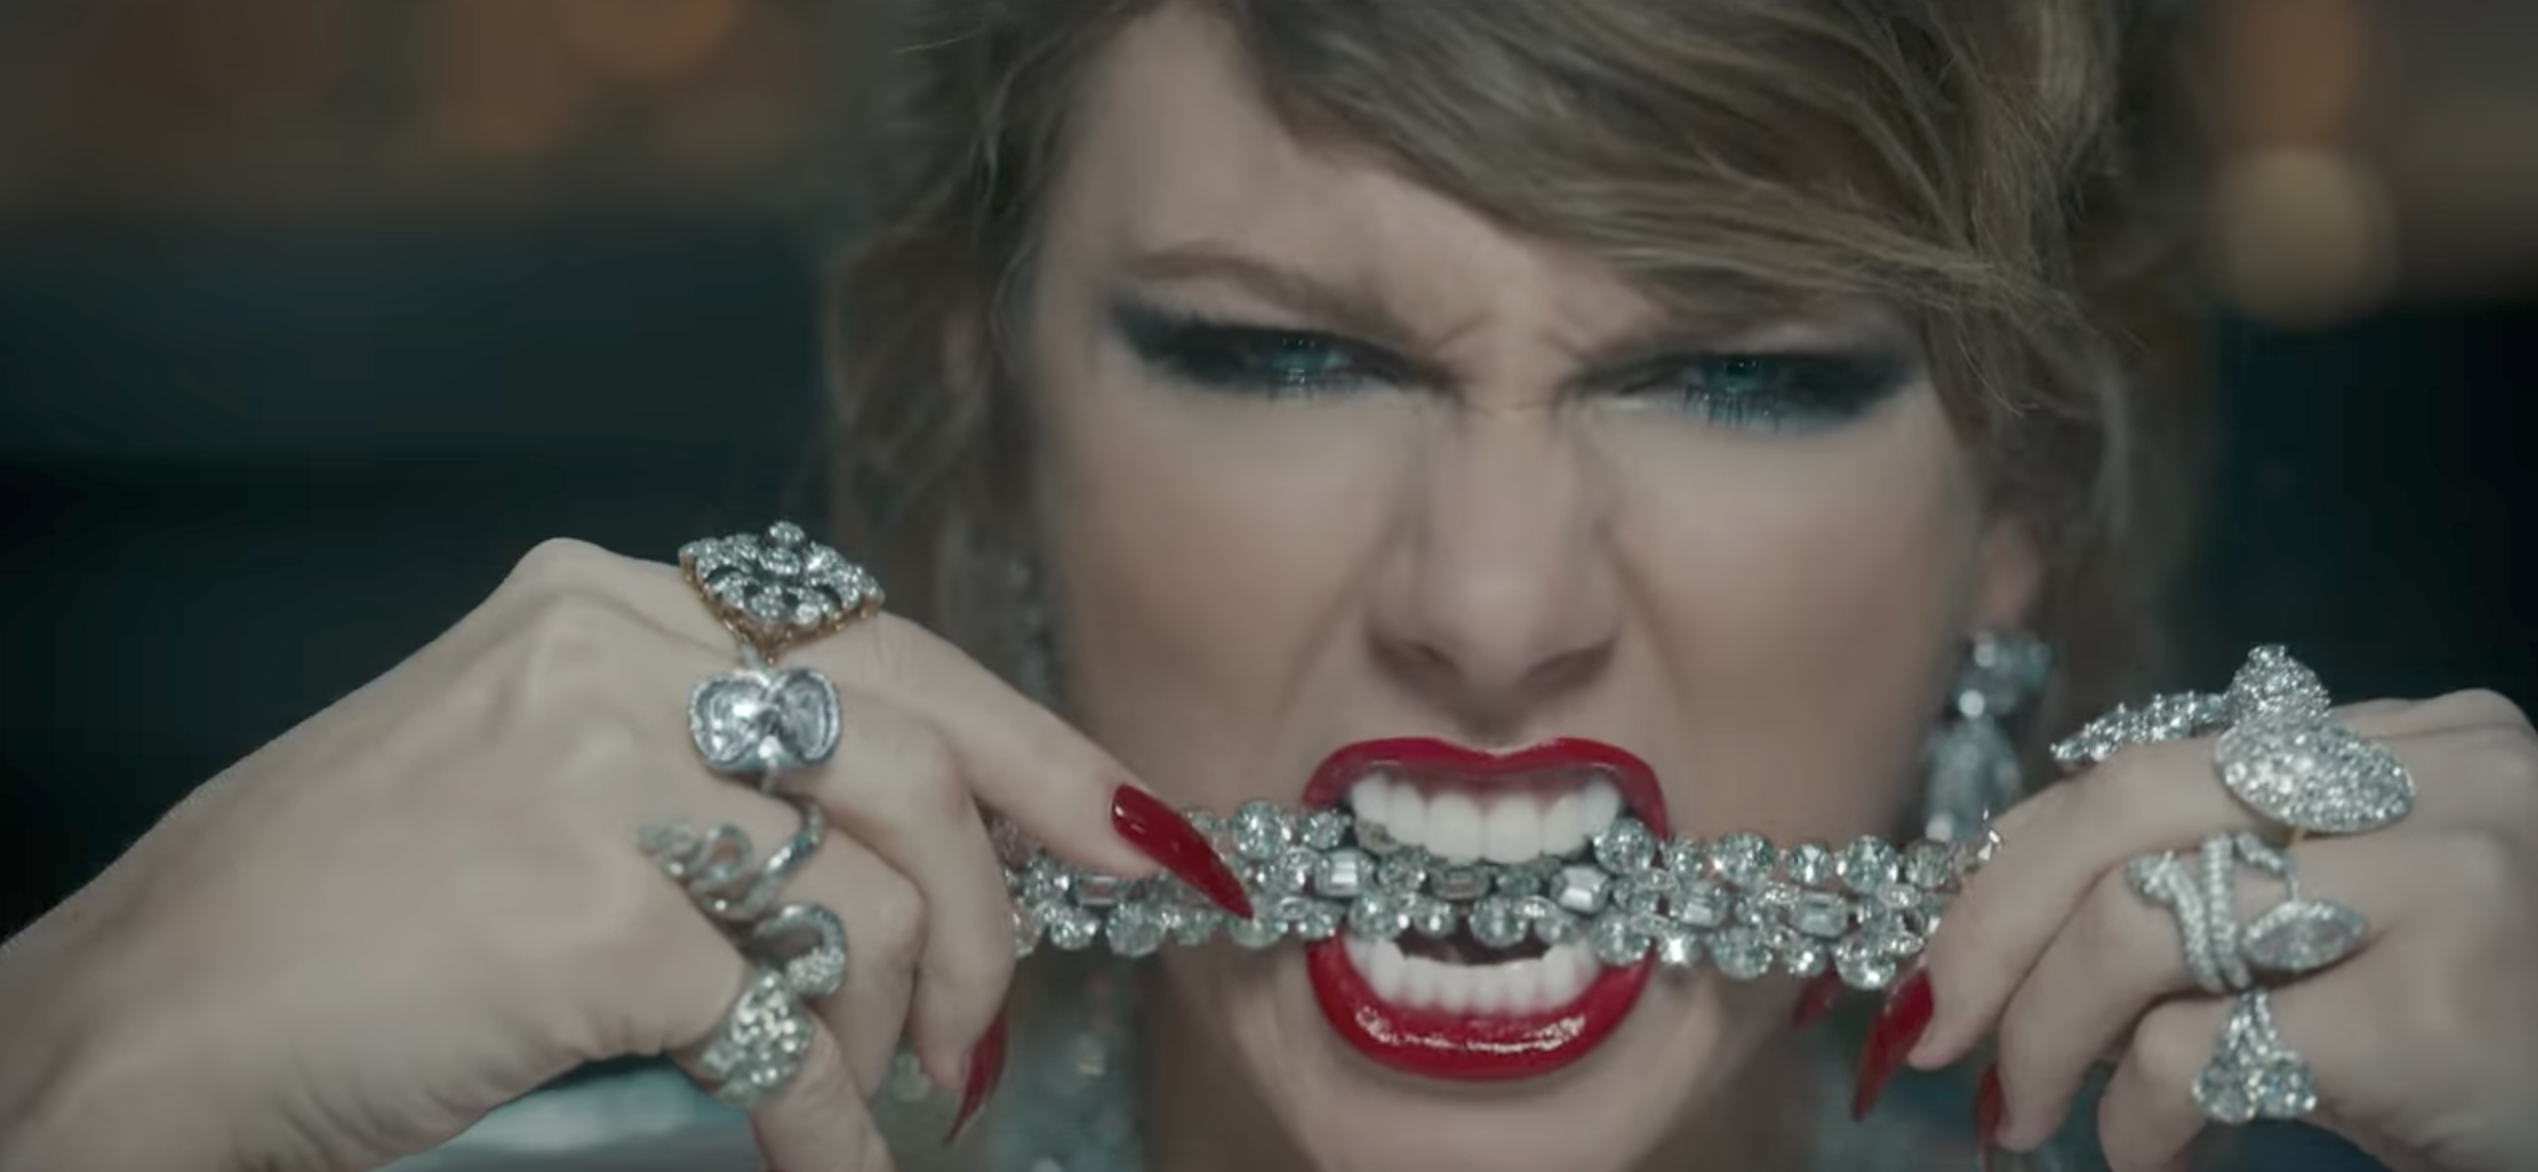 Taylor Swift's latest music video is going to drive the NHS